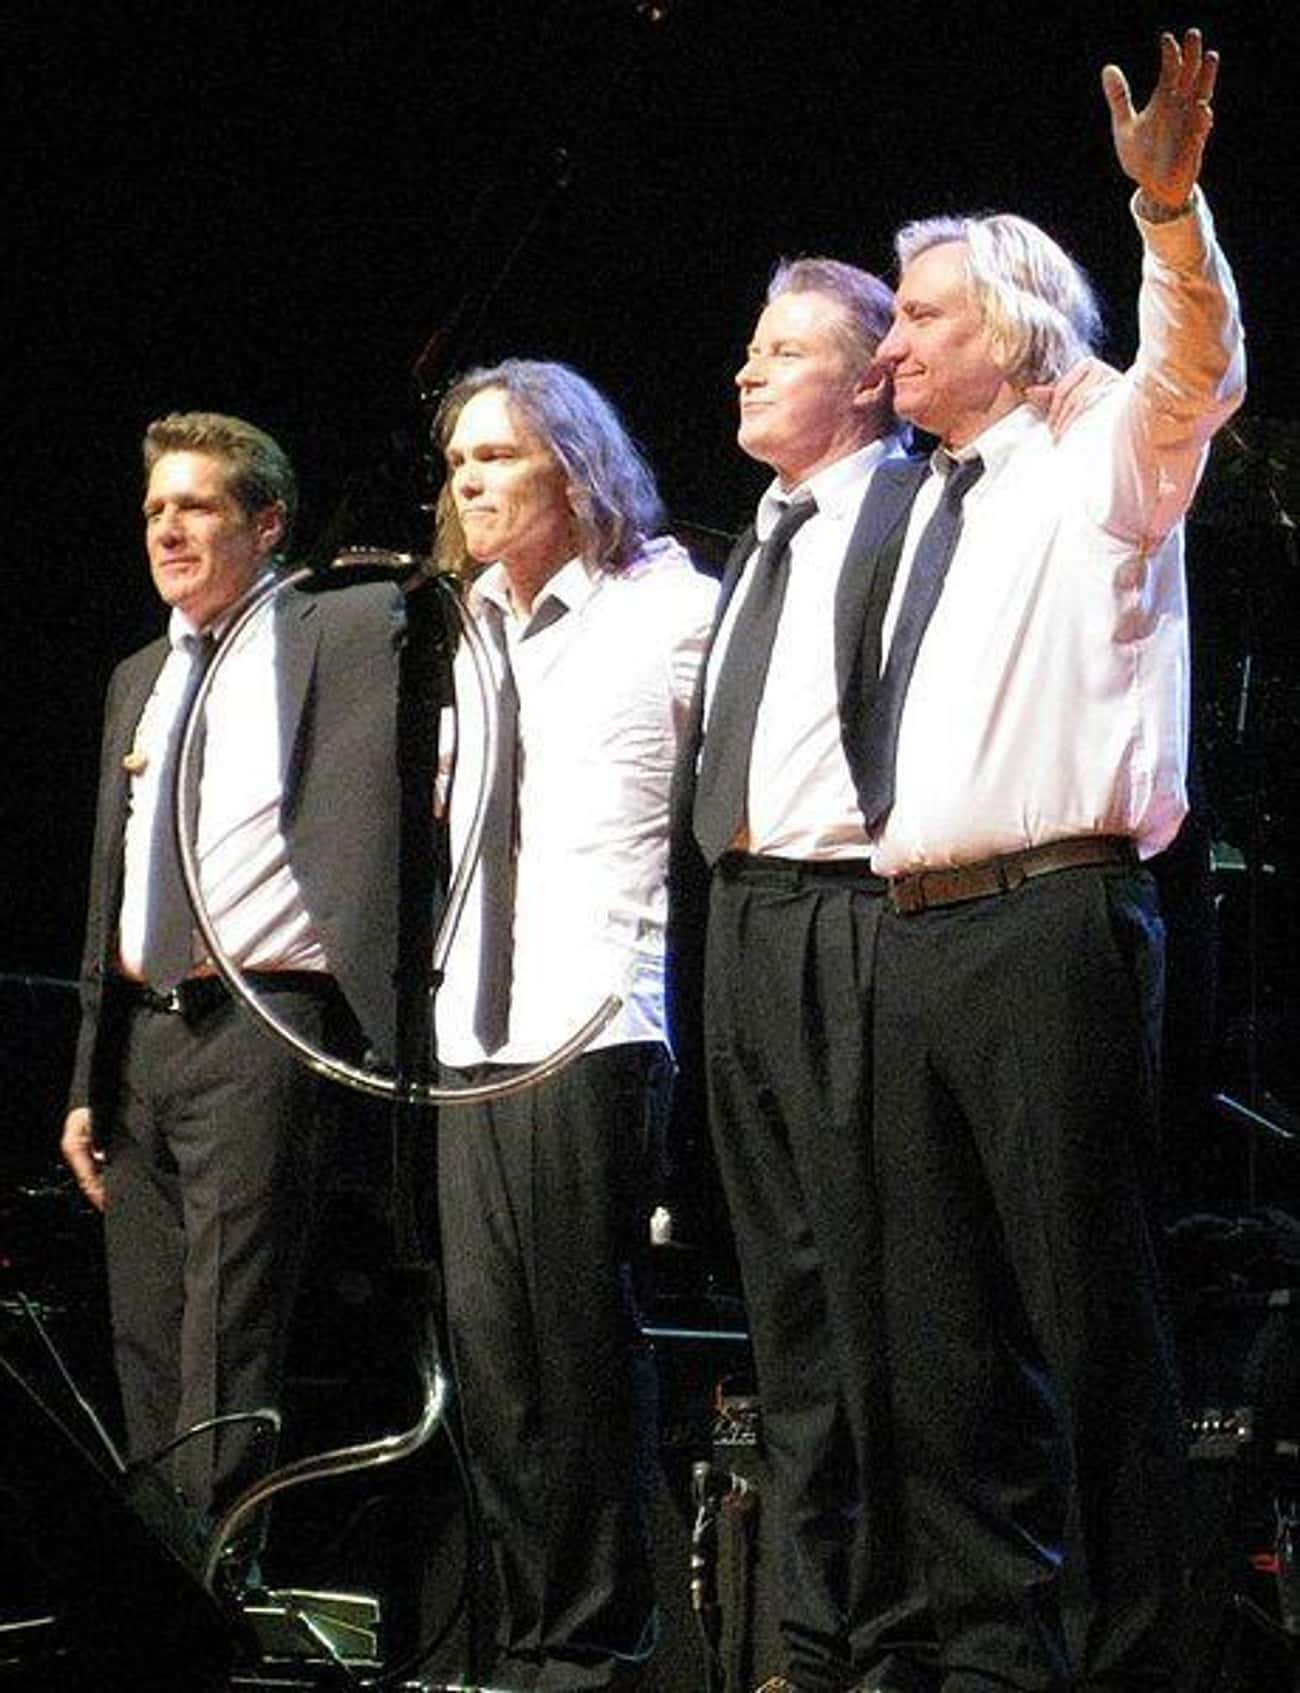 Eagles is listed (or ranked) 3 on the list The Richest Musicians in the World